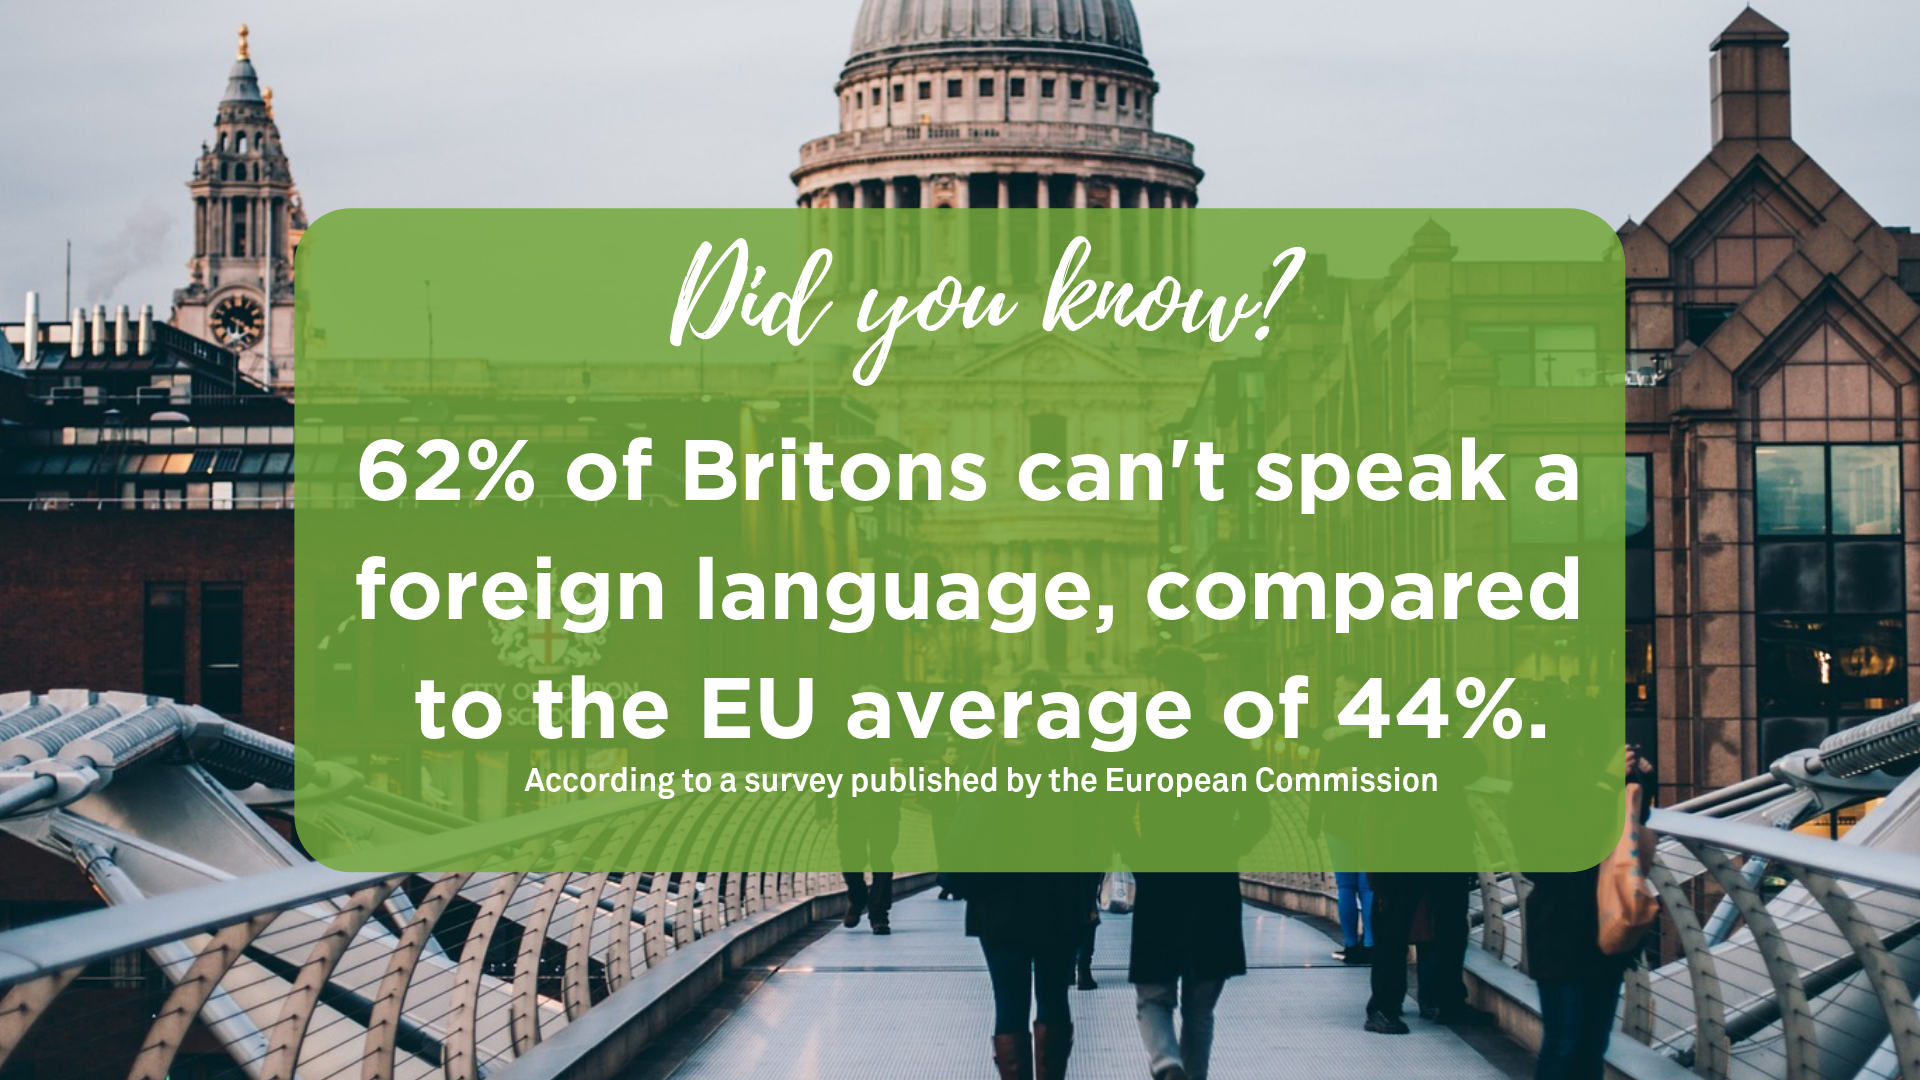 Did you know? 62% of Britons can't speak a foreign language, compared to the EU average of 44%